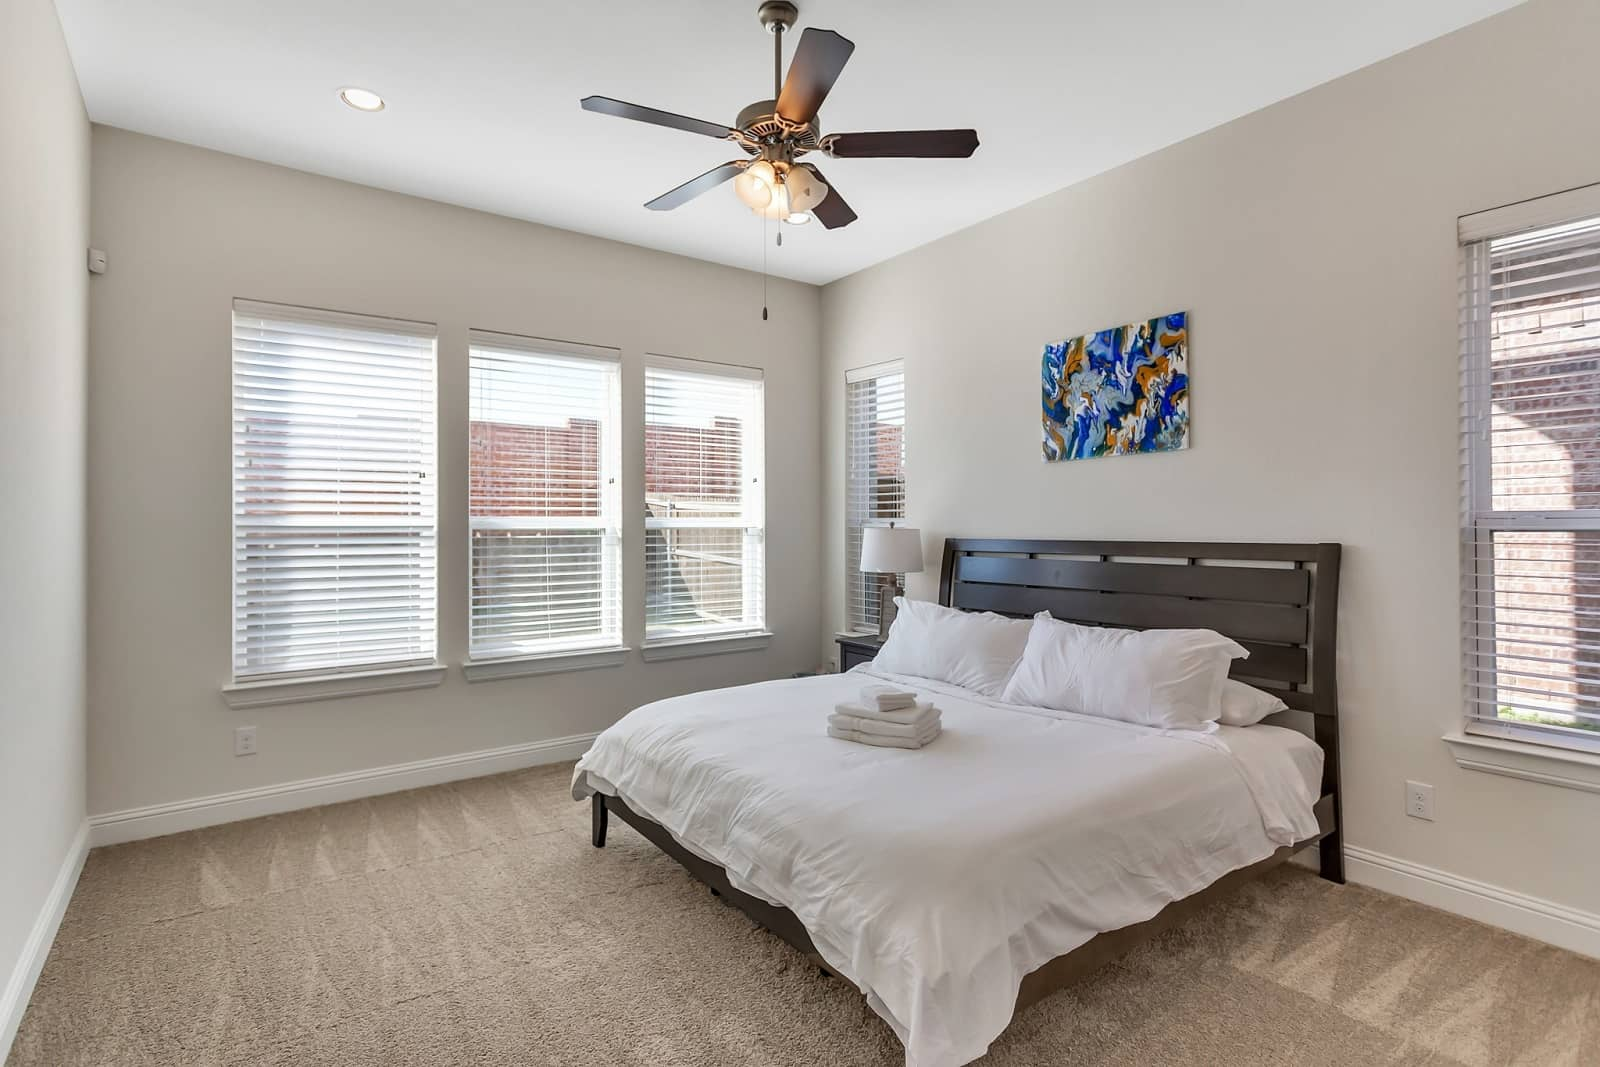 Real Estate Photography in Irving - TX - Bedroom View